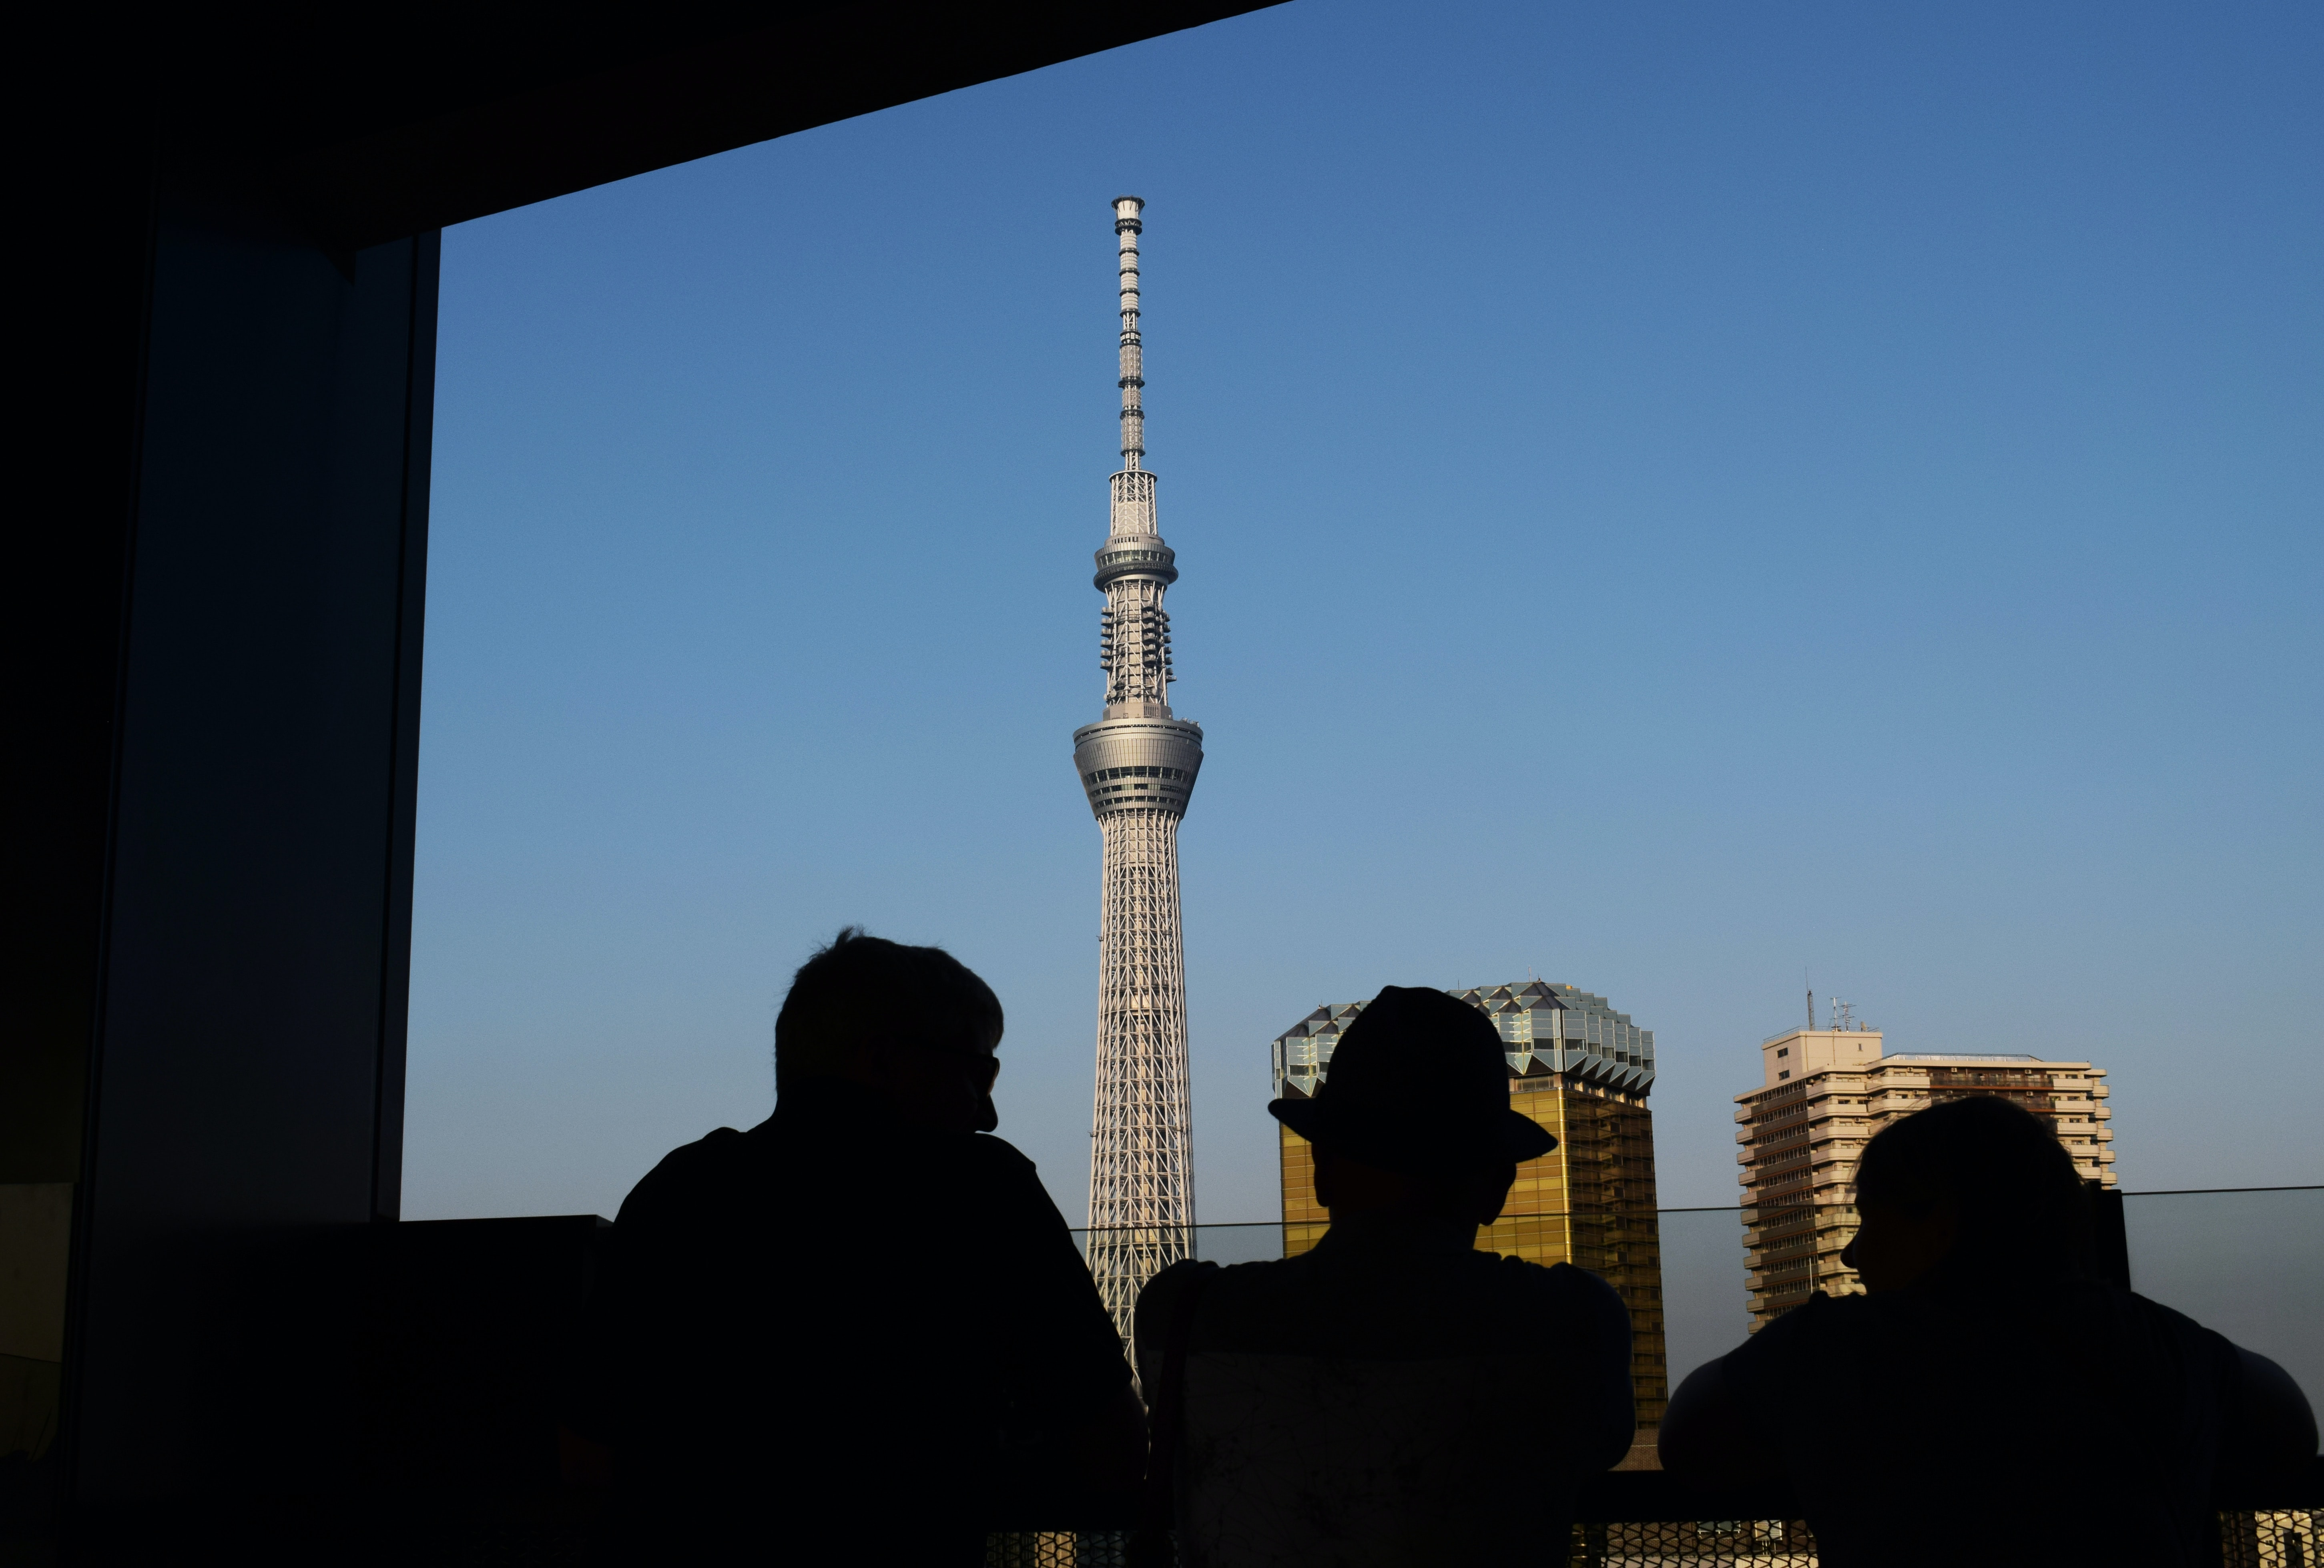 three silhouette of persons standing in front window watching tower building